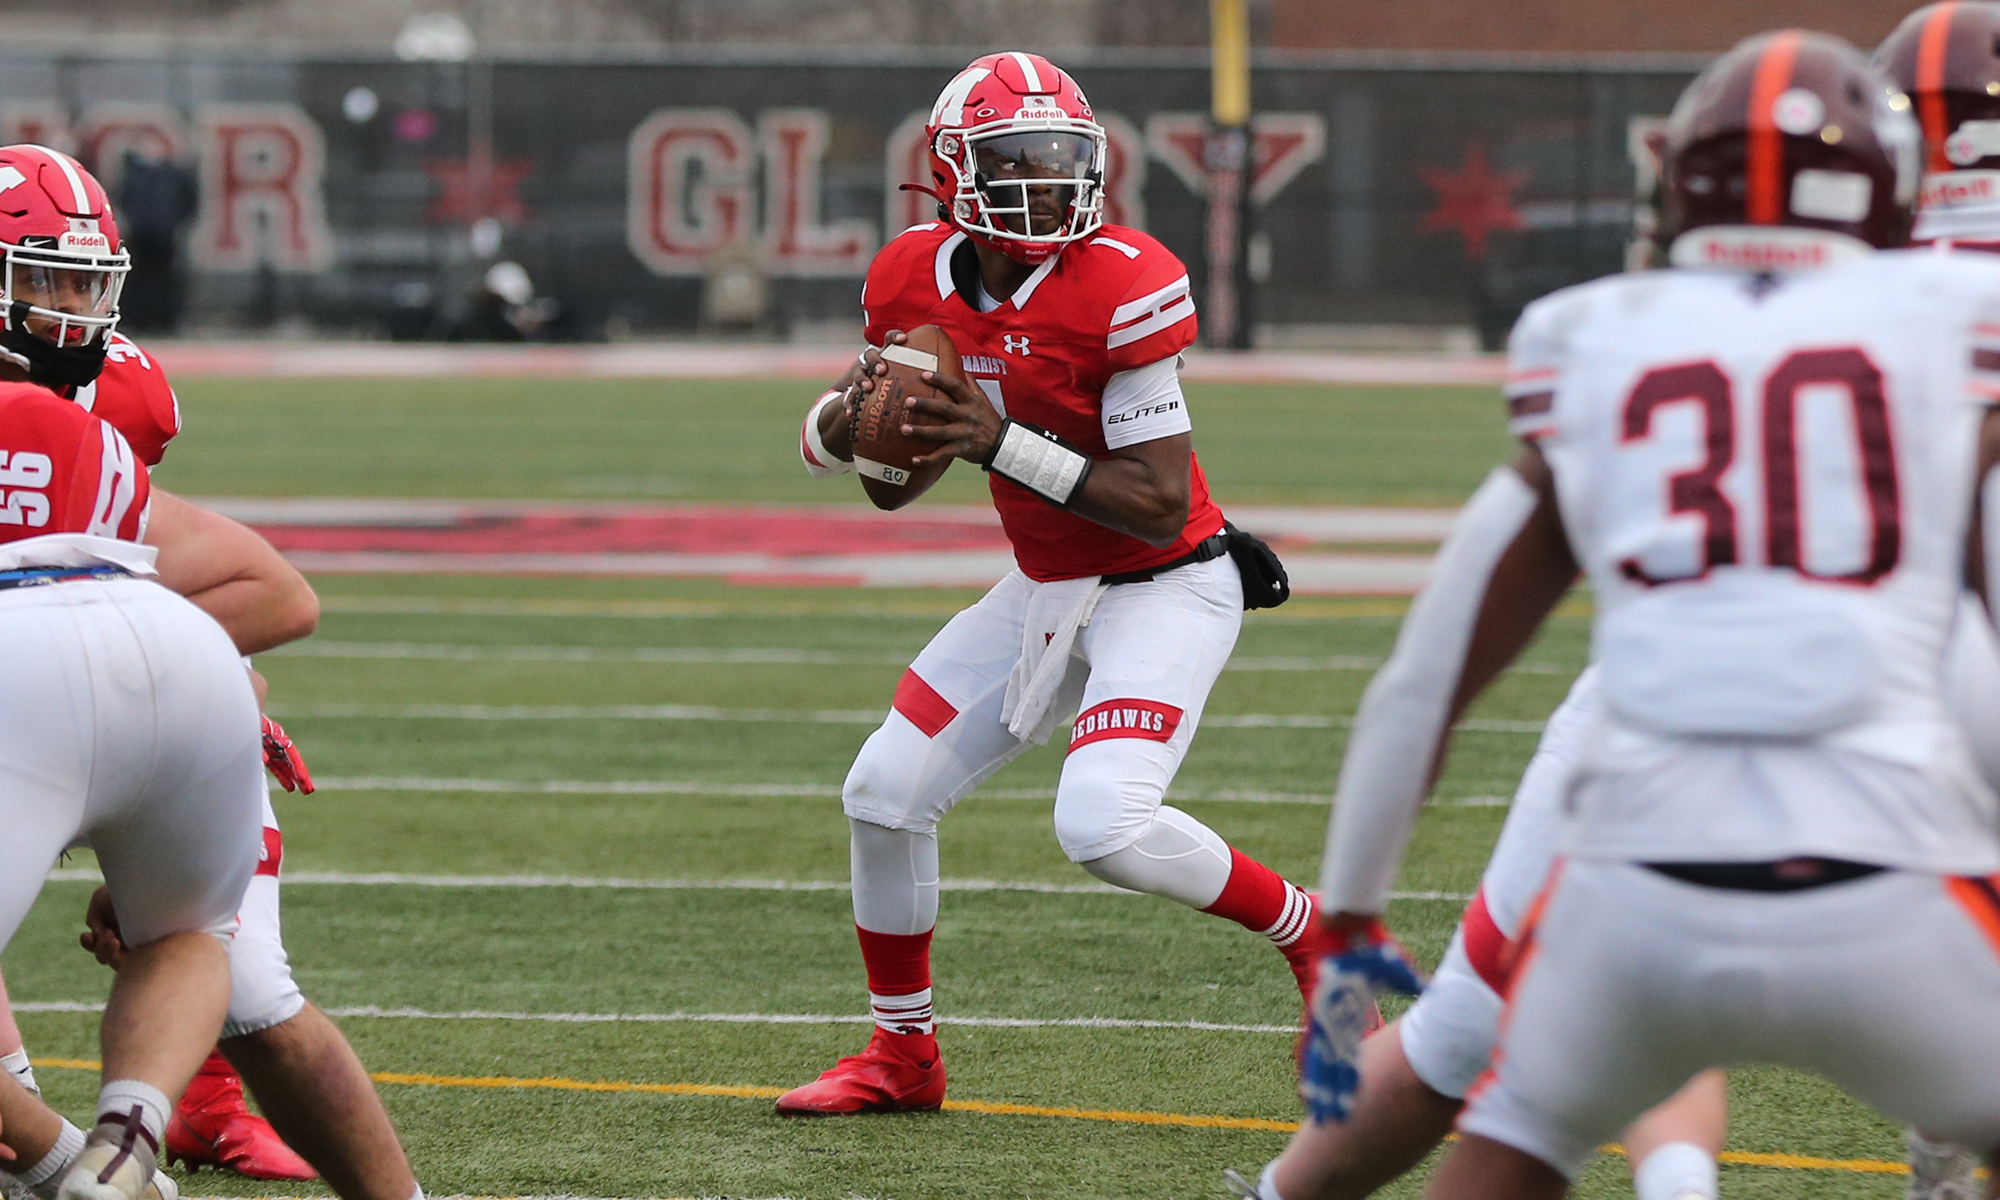 Marist's Dontrell Jackson, Jr., (1) drops back to pass the ball against Brother Rice.